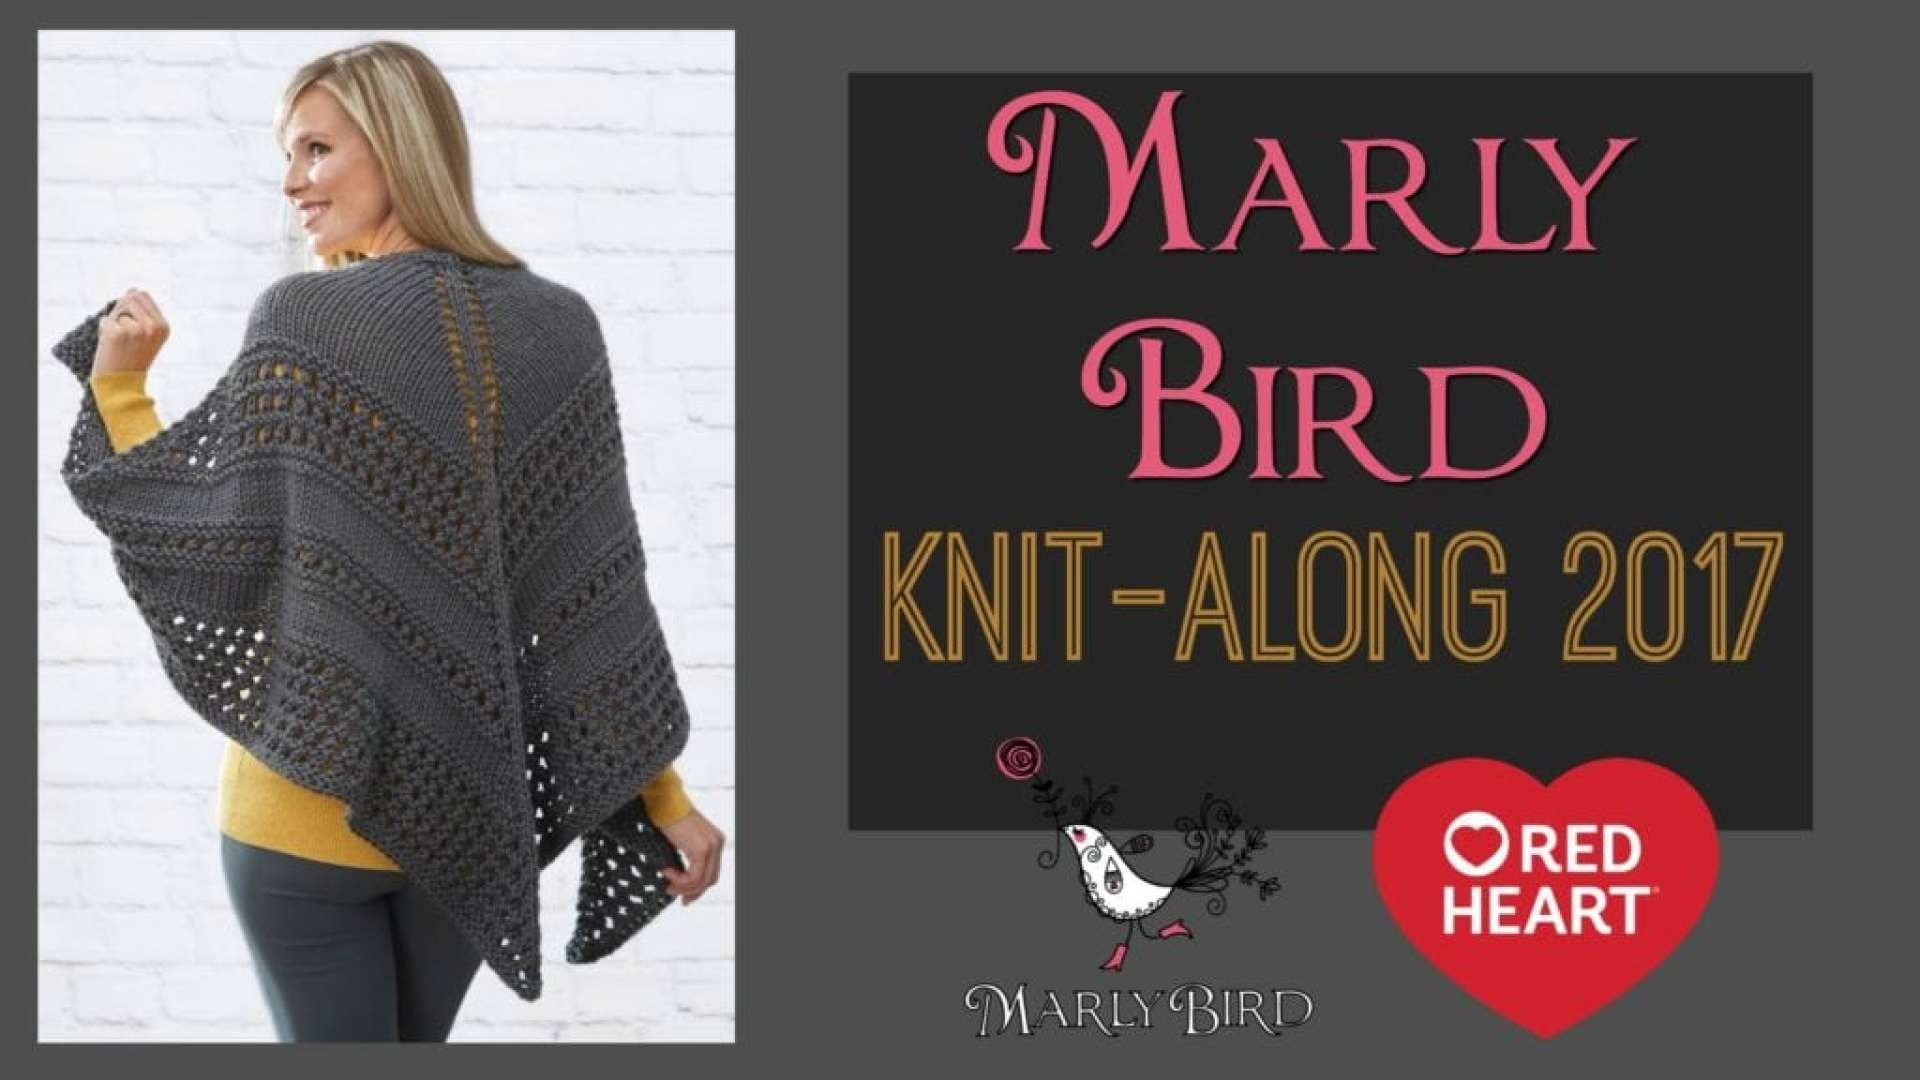 Marly Bird and Red Heart 2017 Knit Along